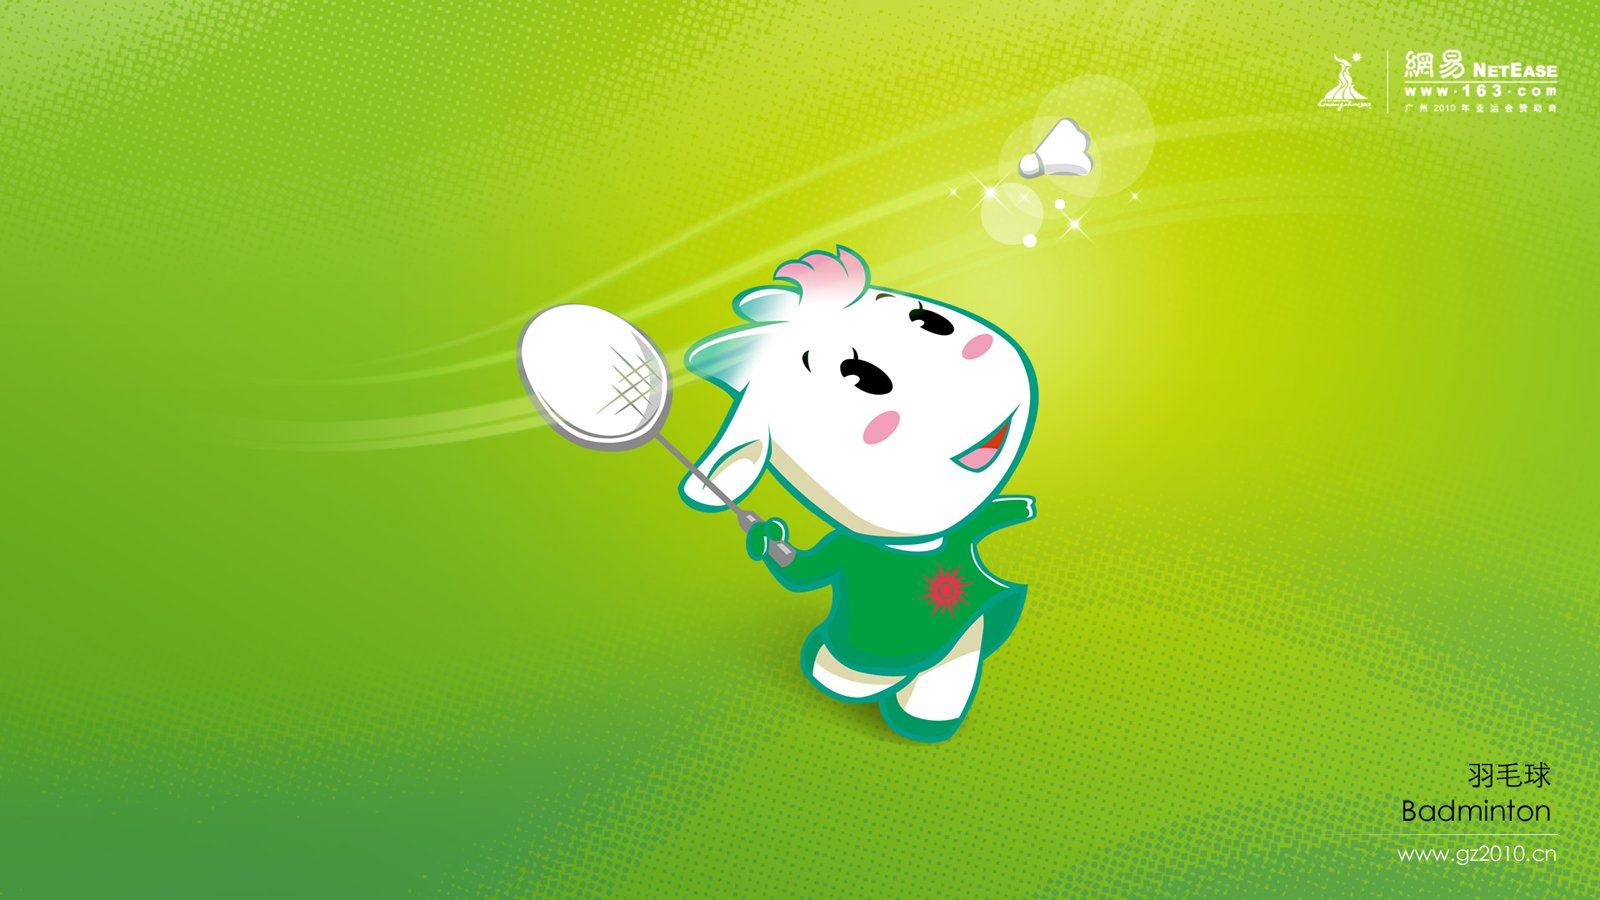 2010 guangzhou asian games wallpapers - personal blog of mario xiao